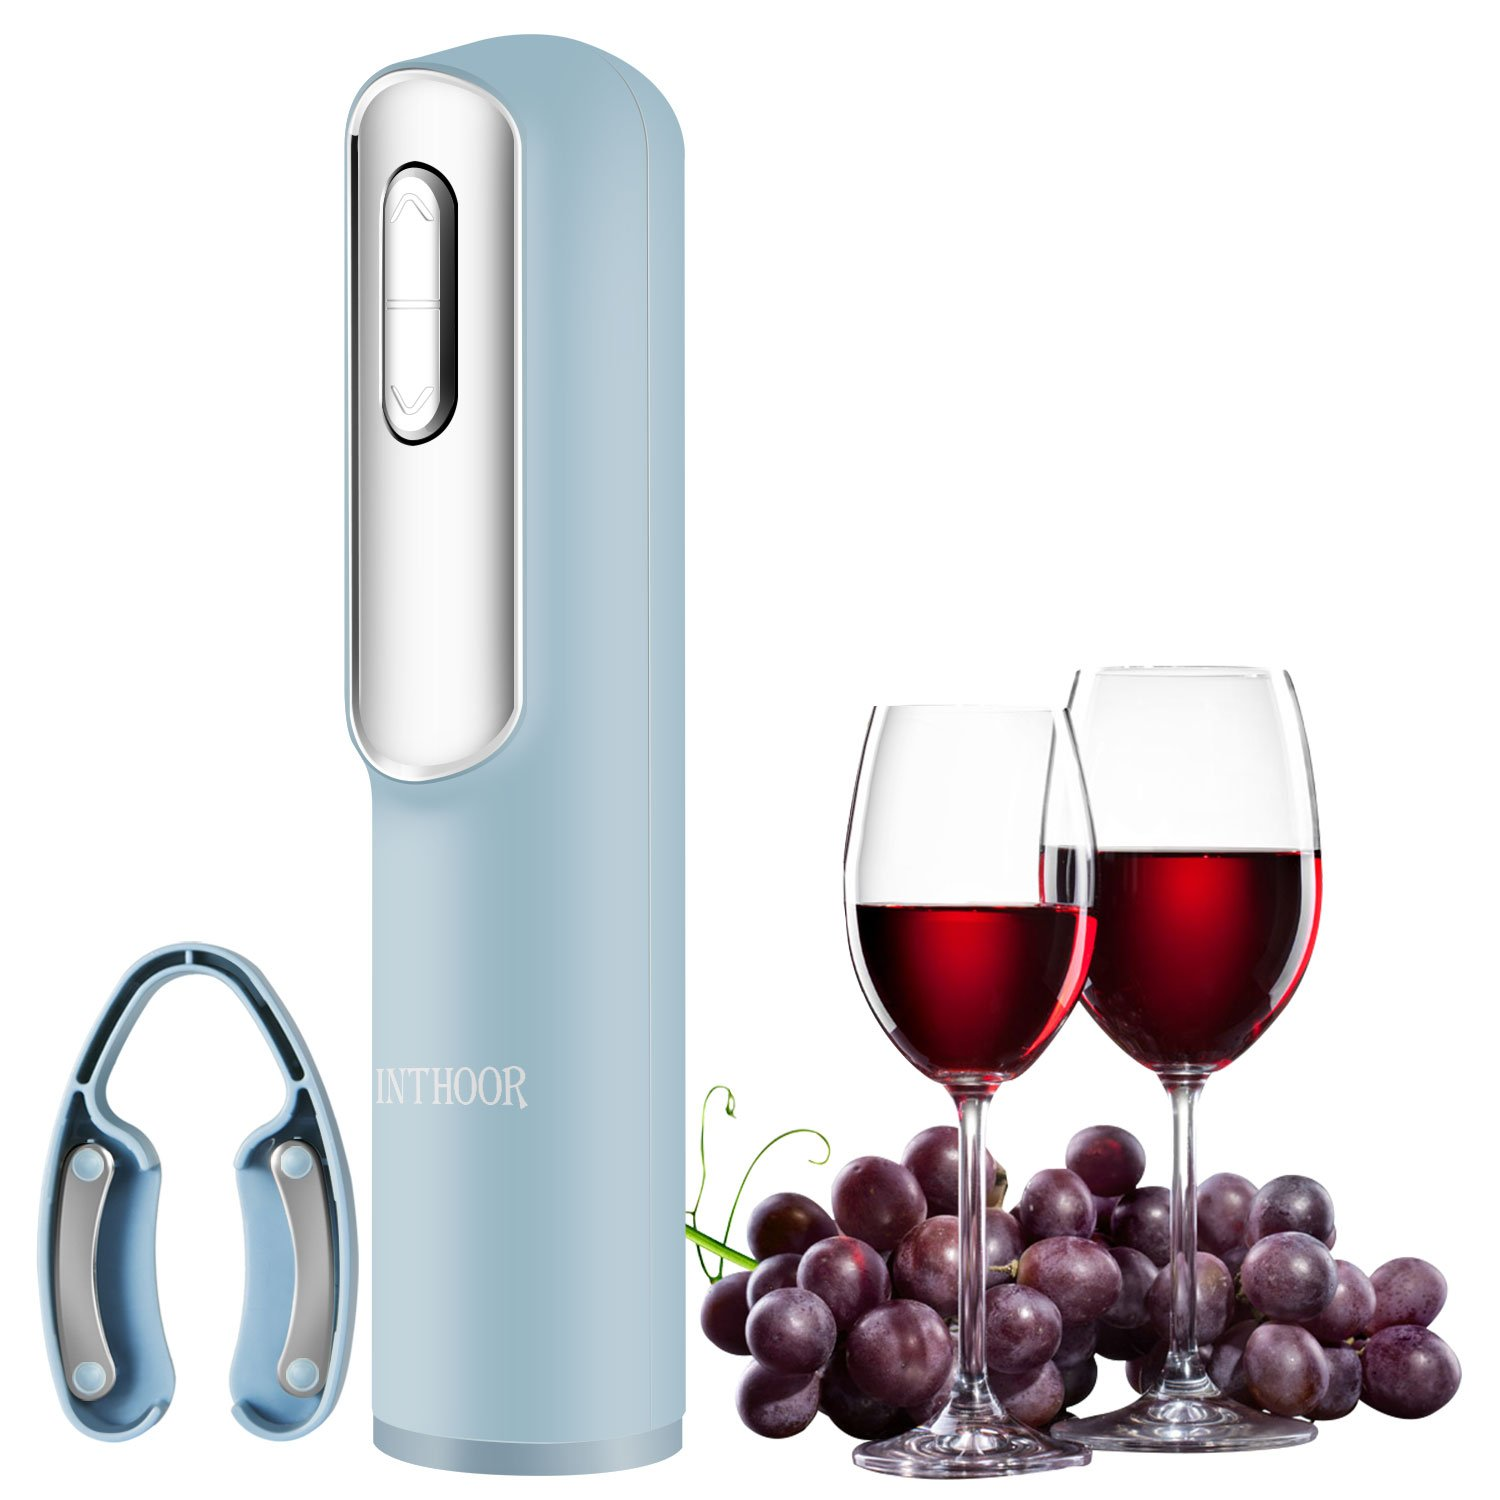 InThoor Electric Wine Opener, Rechargeable Wine Bottle Opener Automatic Corkscrew Openers with Foil Cutter and USB Charging Cable - Blue (bottleopener)